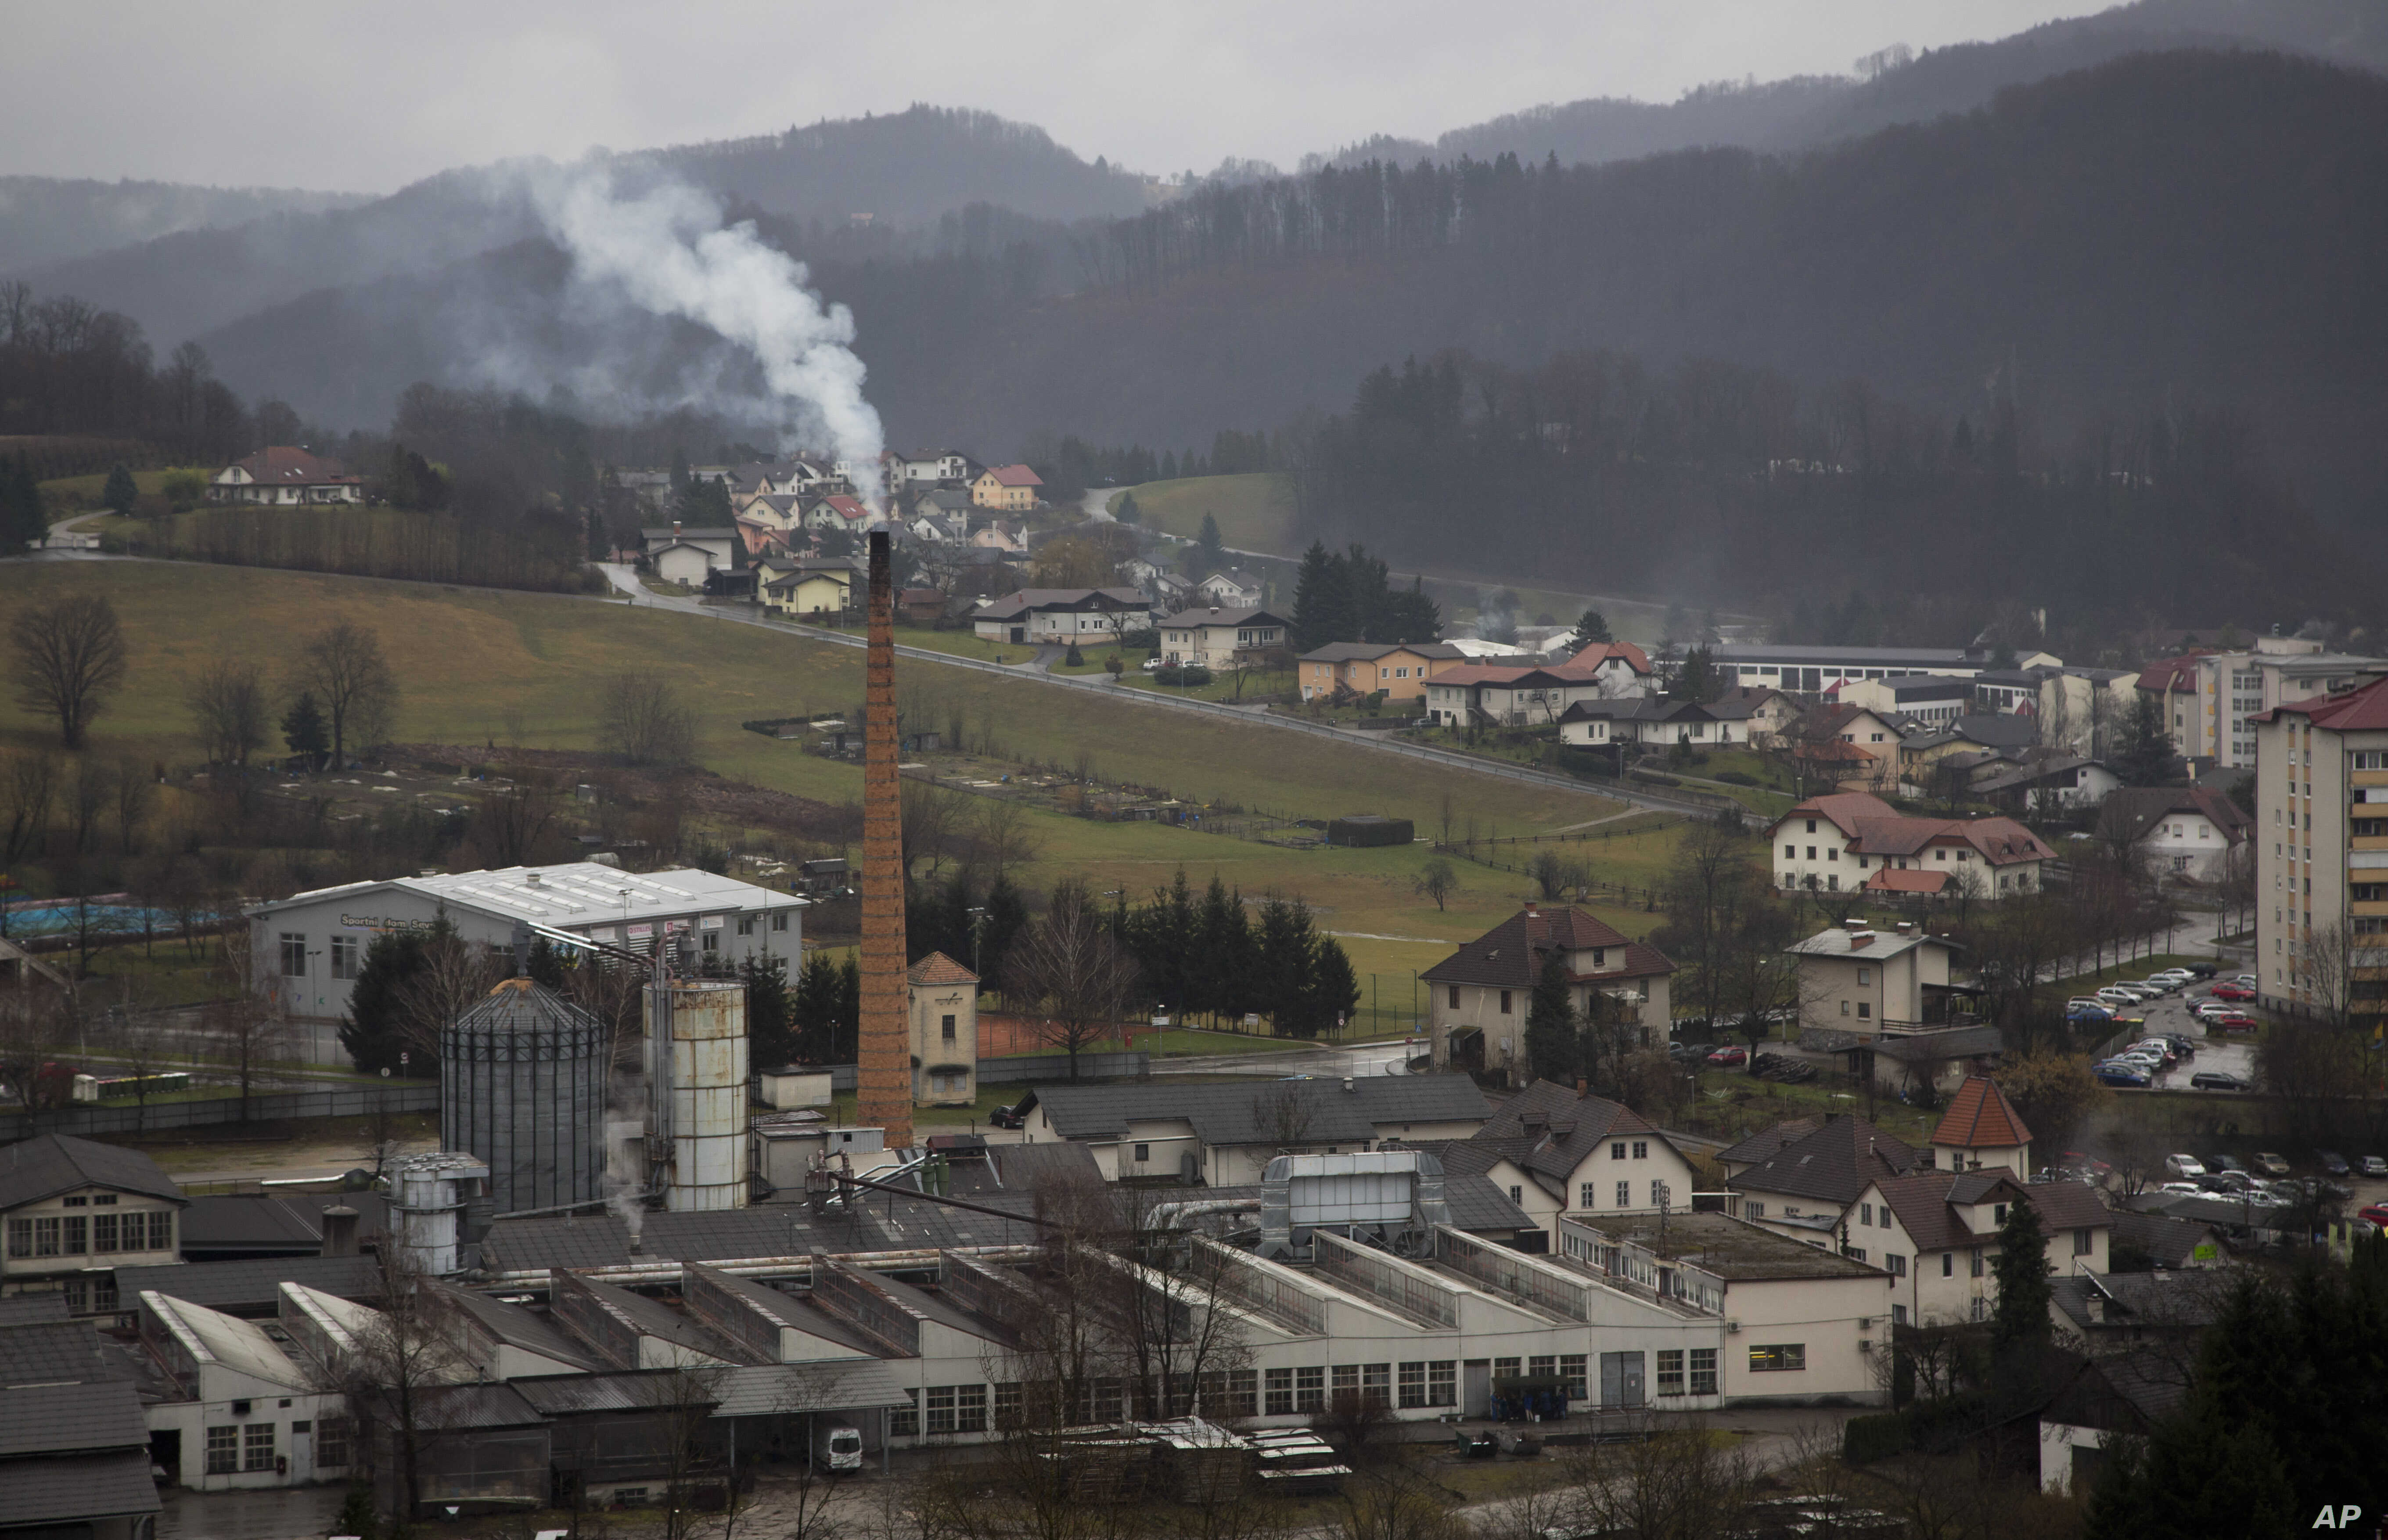 Melanija Knavs, now known as Melania Trump, was born and raised in the town of Sevnica, Slovenia, seen here Feb. 15, 2016.